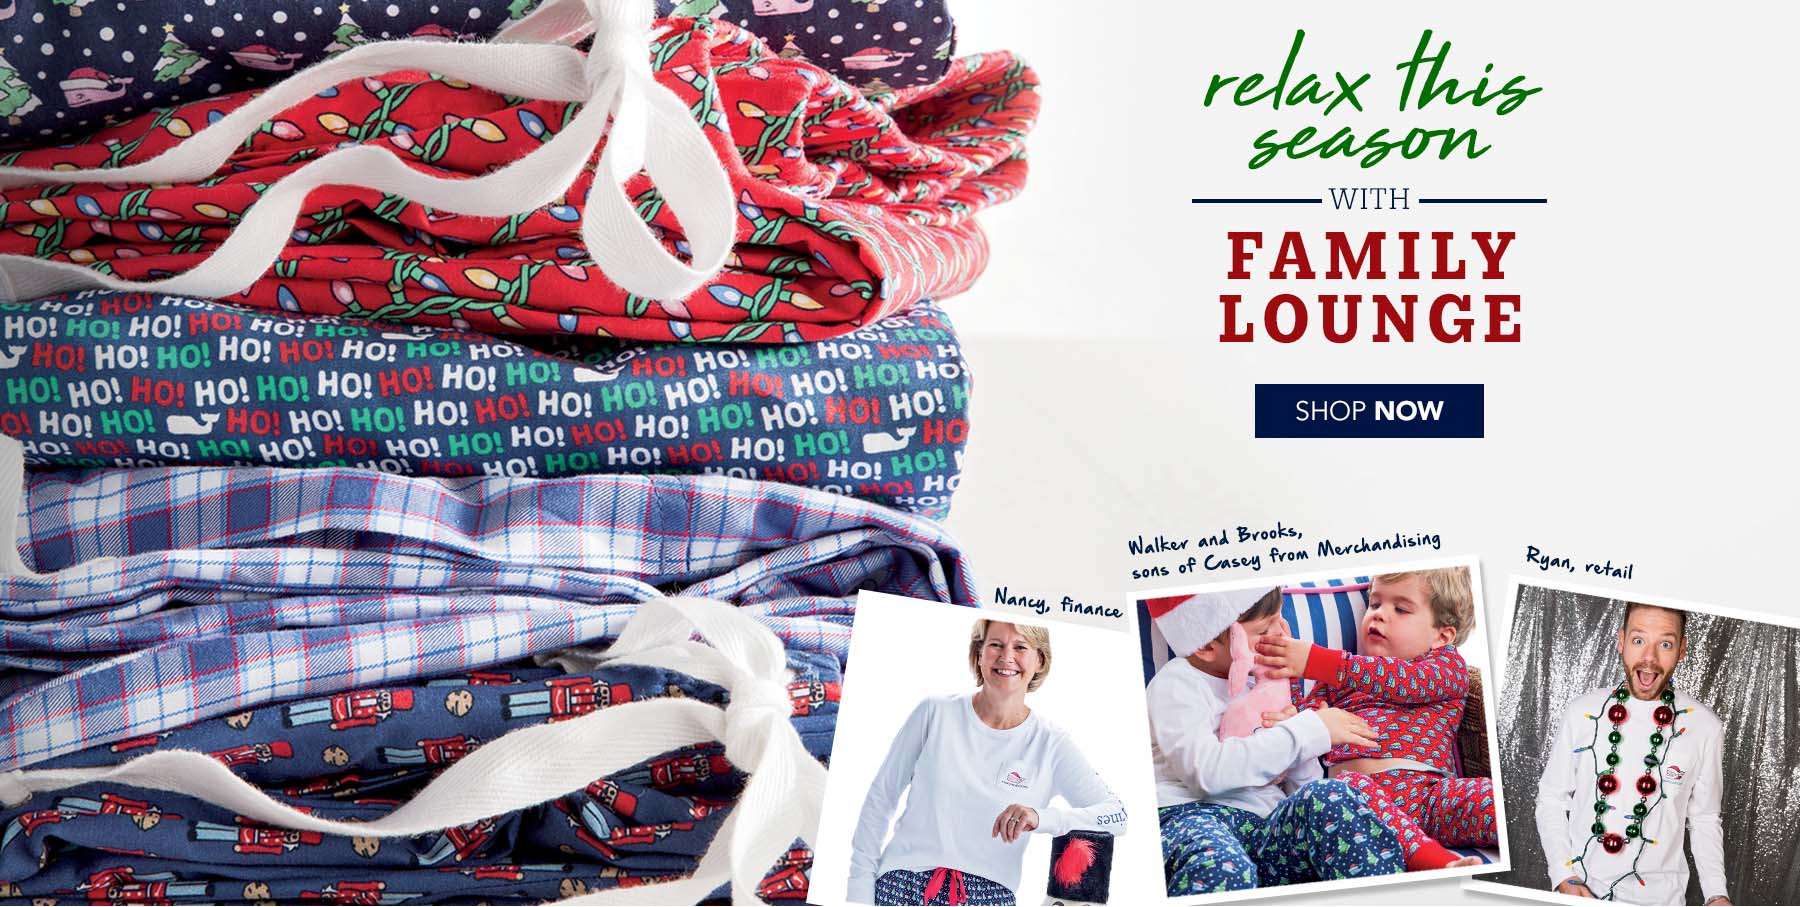 Relax this season with family lounge. Shop lounge.